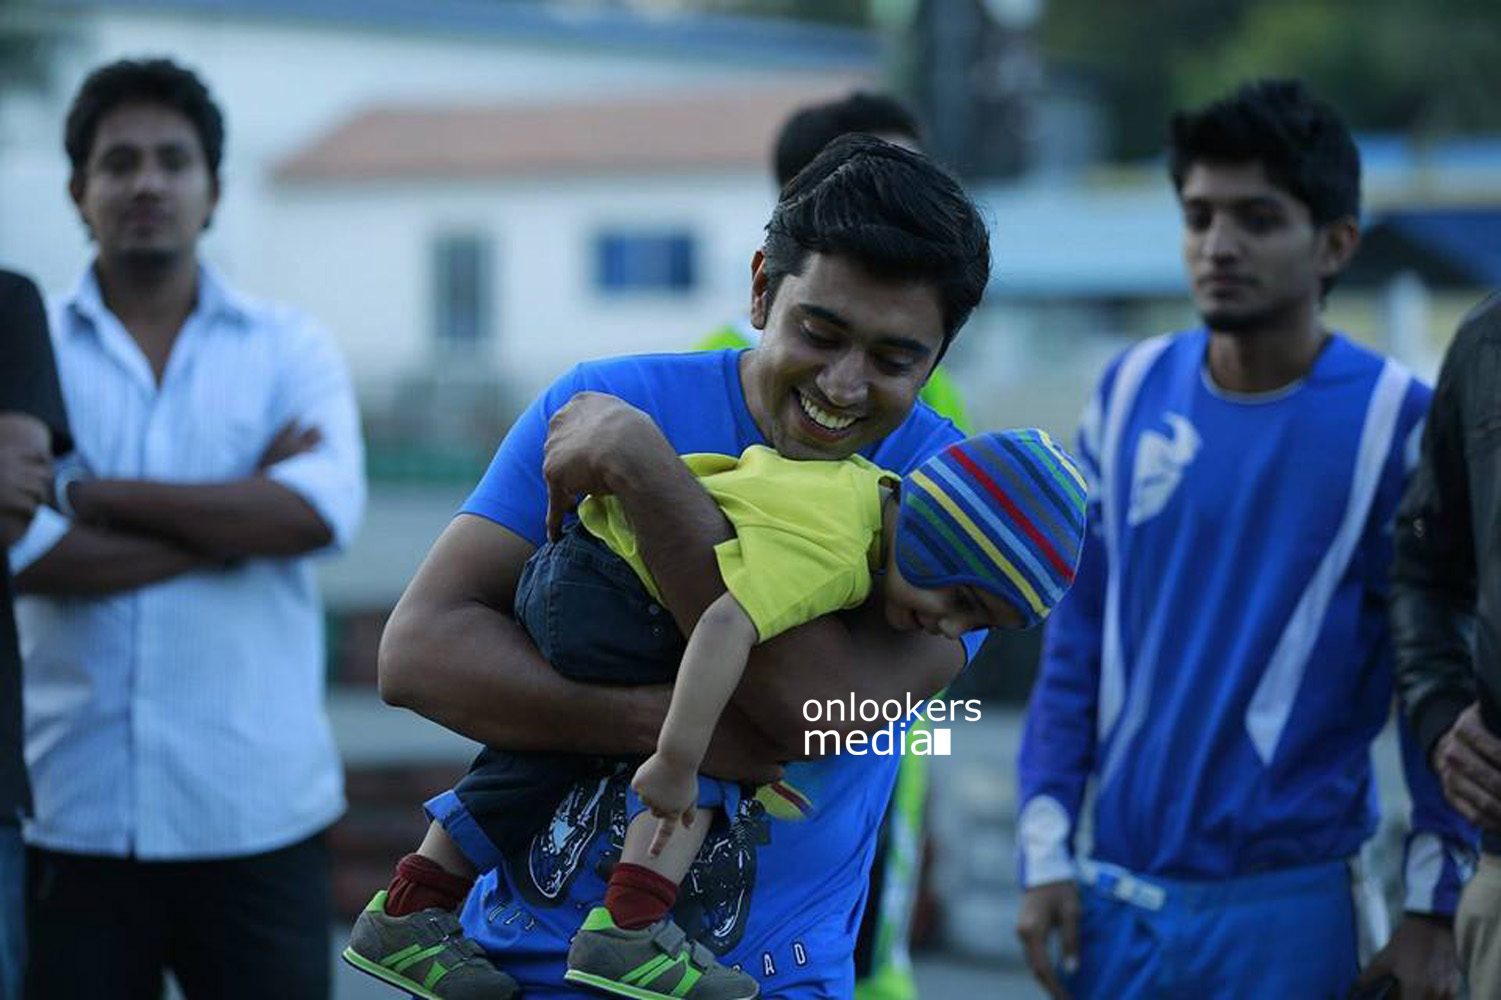 http://onlookersmedia.in/wp-content/uploads/2015/04/Nivin-Pauly-Stills-Images-Photos-Malayalam-Movie-2015-Onlookers-Media-27.jpg